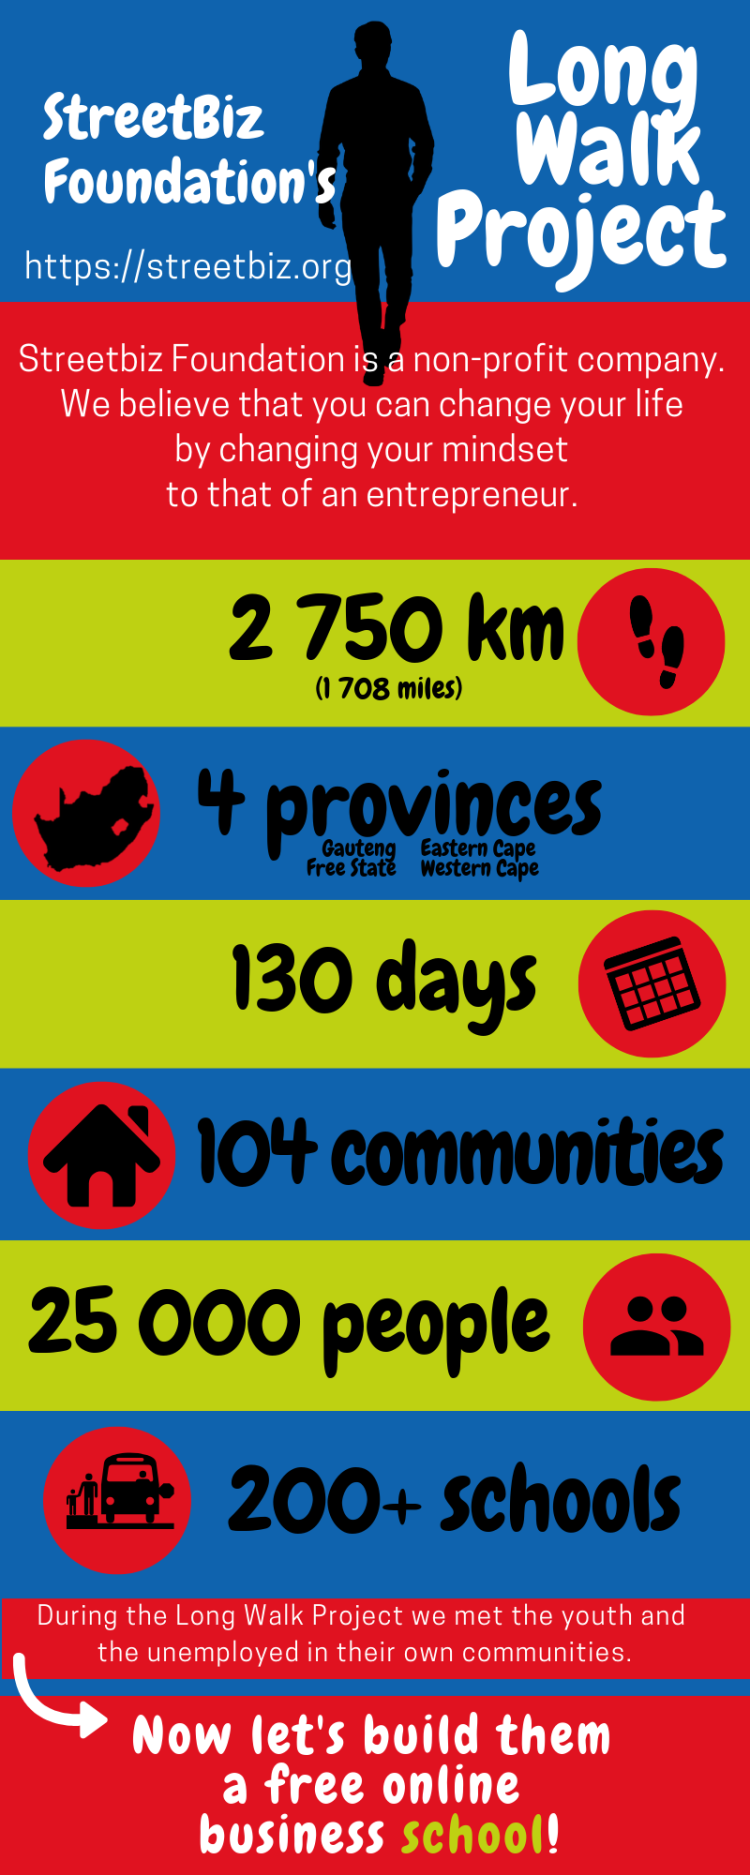 Long Walk Project 2018 Infographic